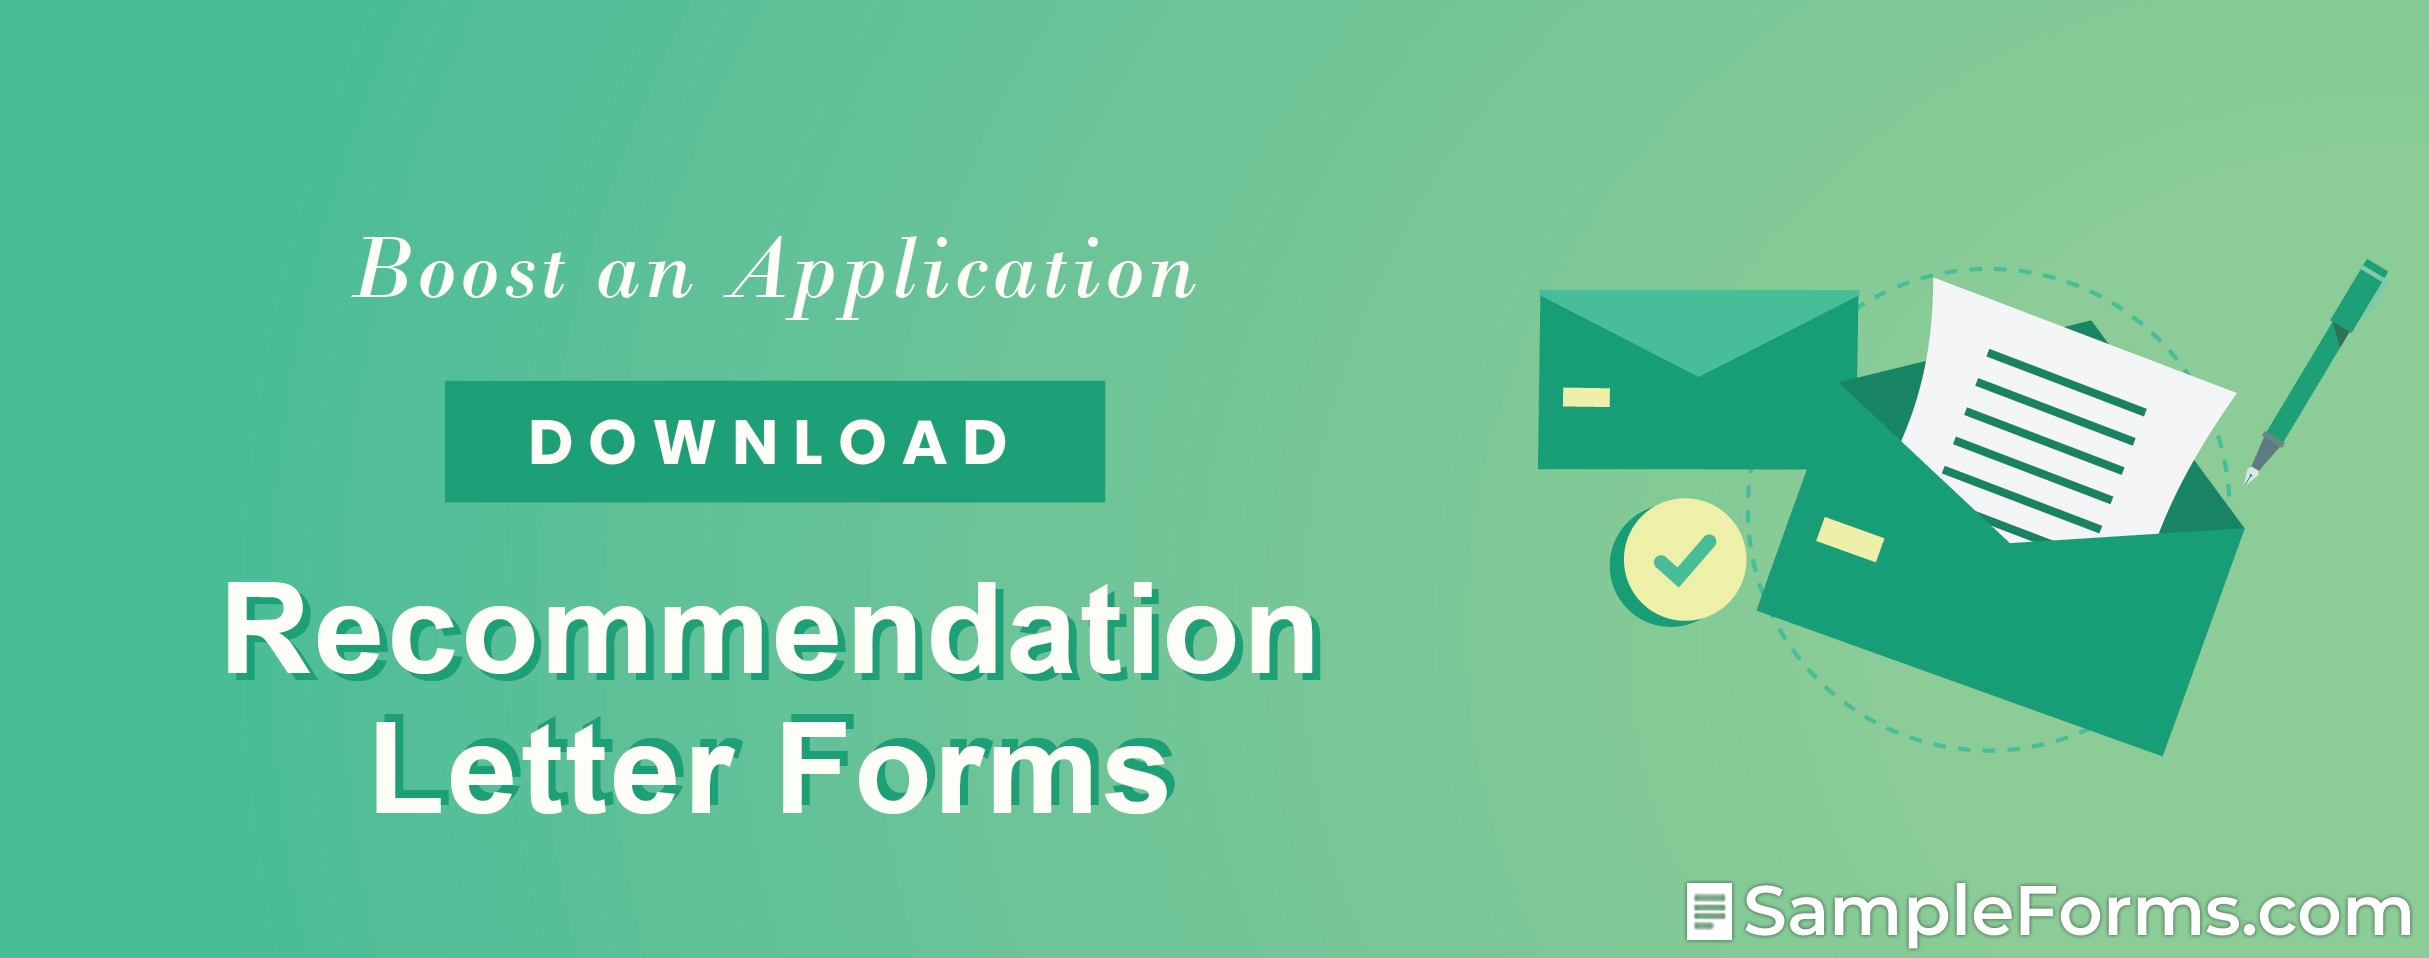 Recommendation Letter Forms